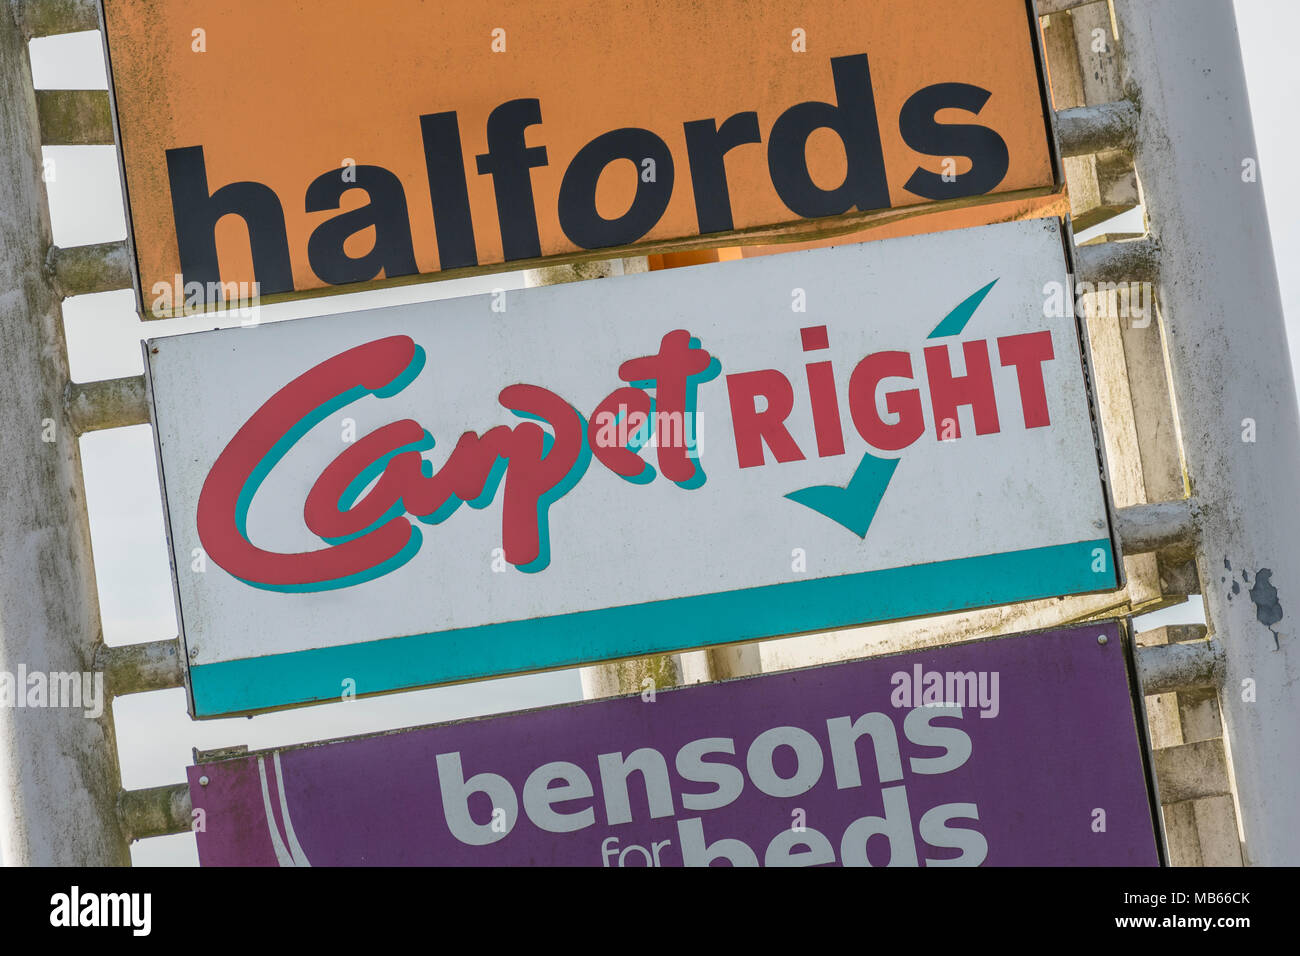 CarpetRight is possibly facing closure of stores in the UK - exterior of Bodmin Retail Park CarpetRight store before potential closures. Stock Photo